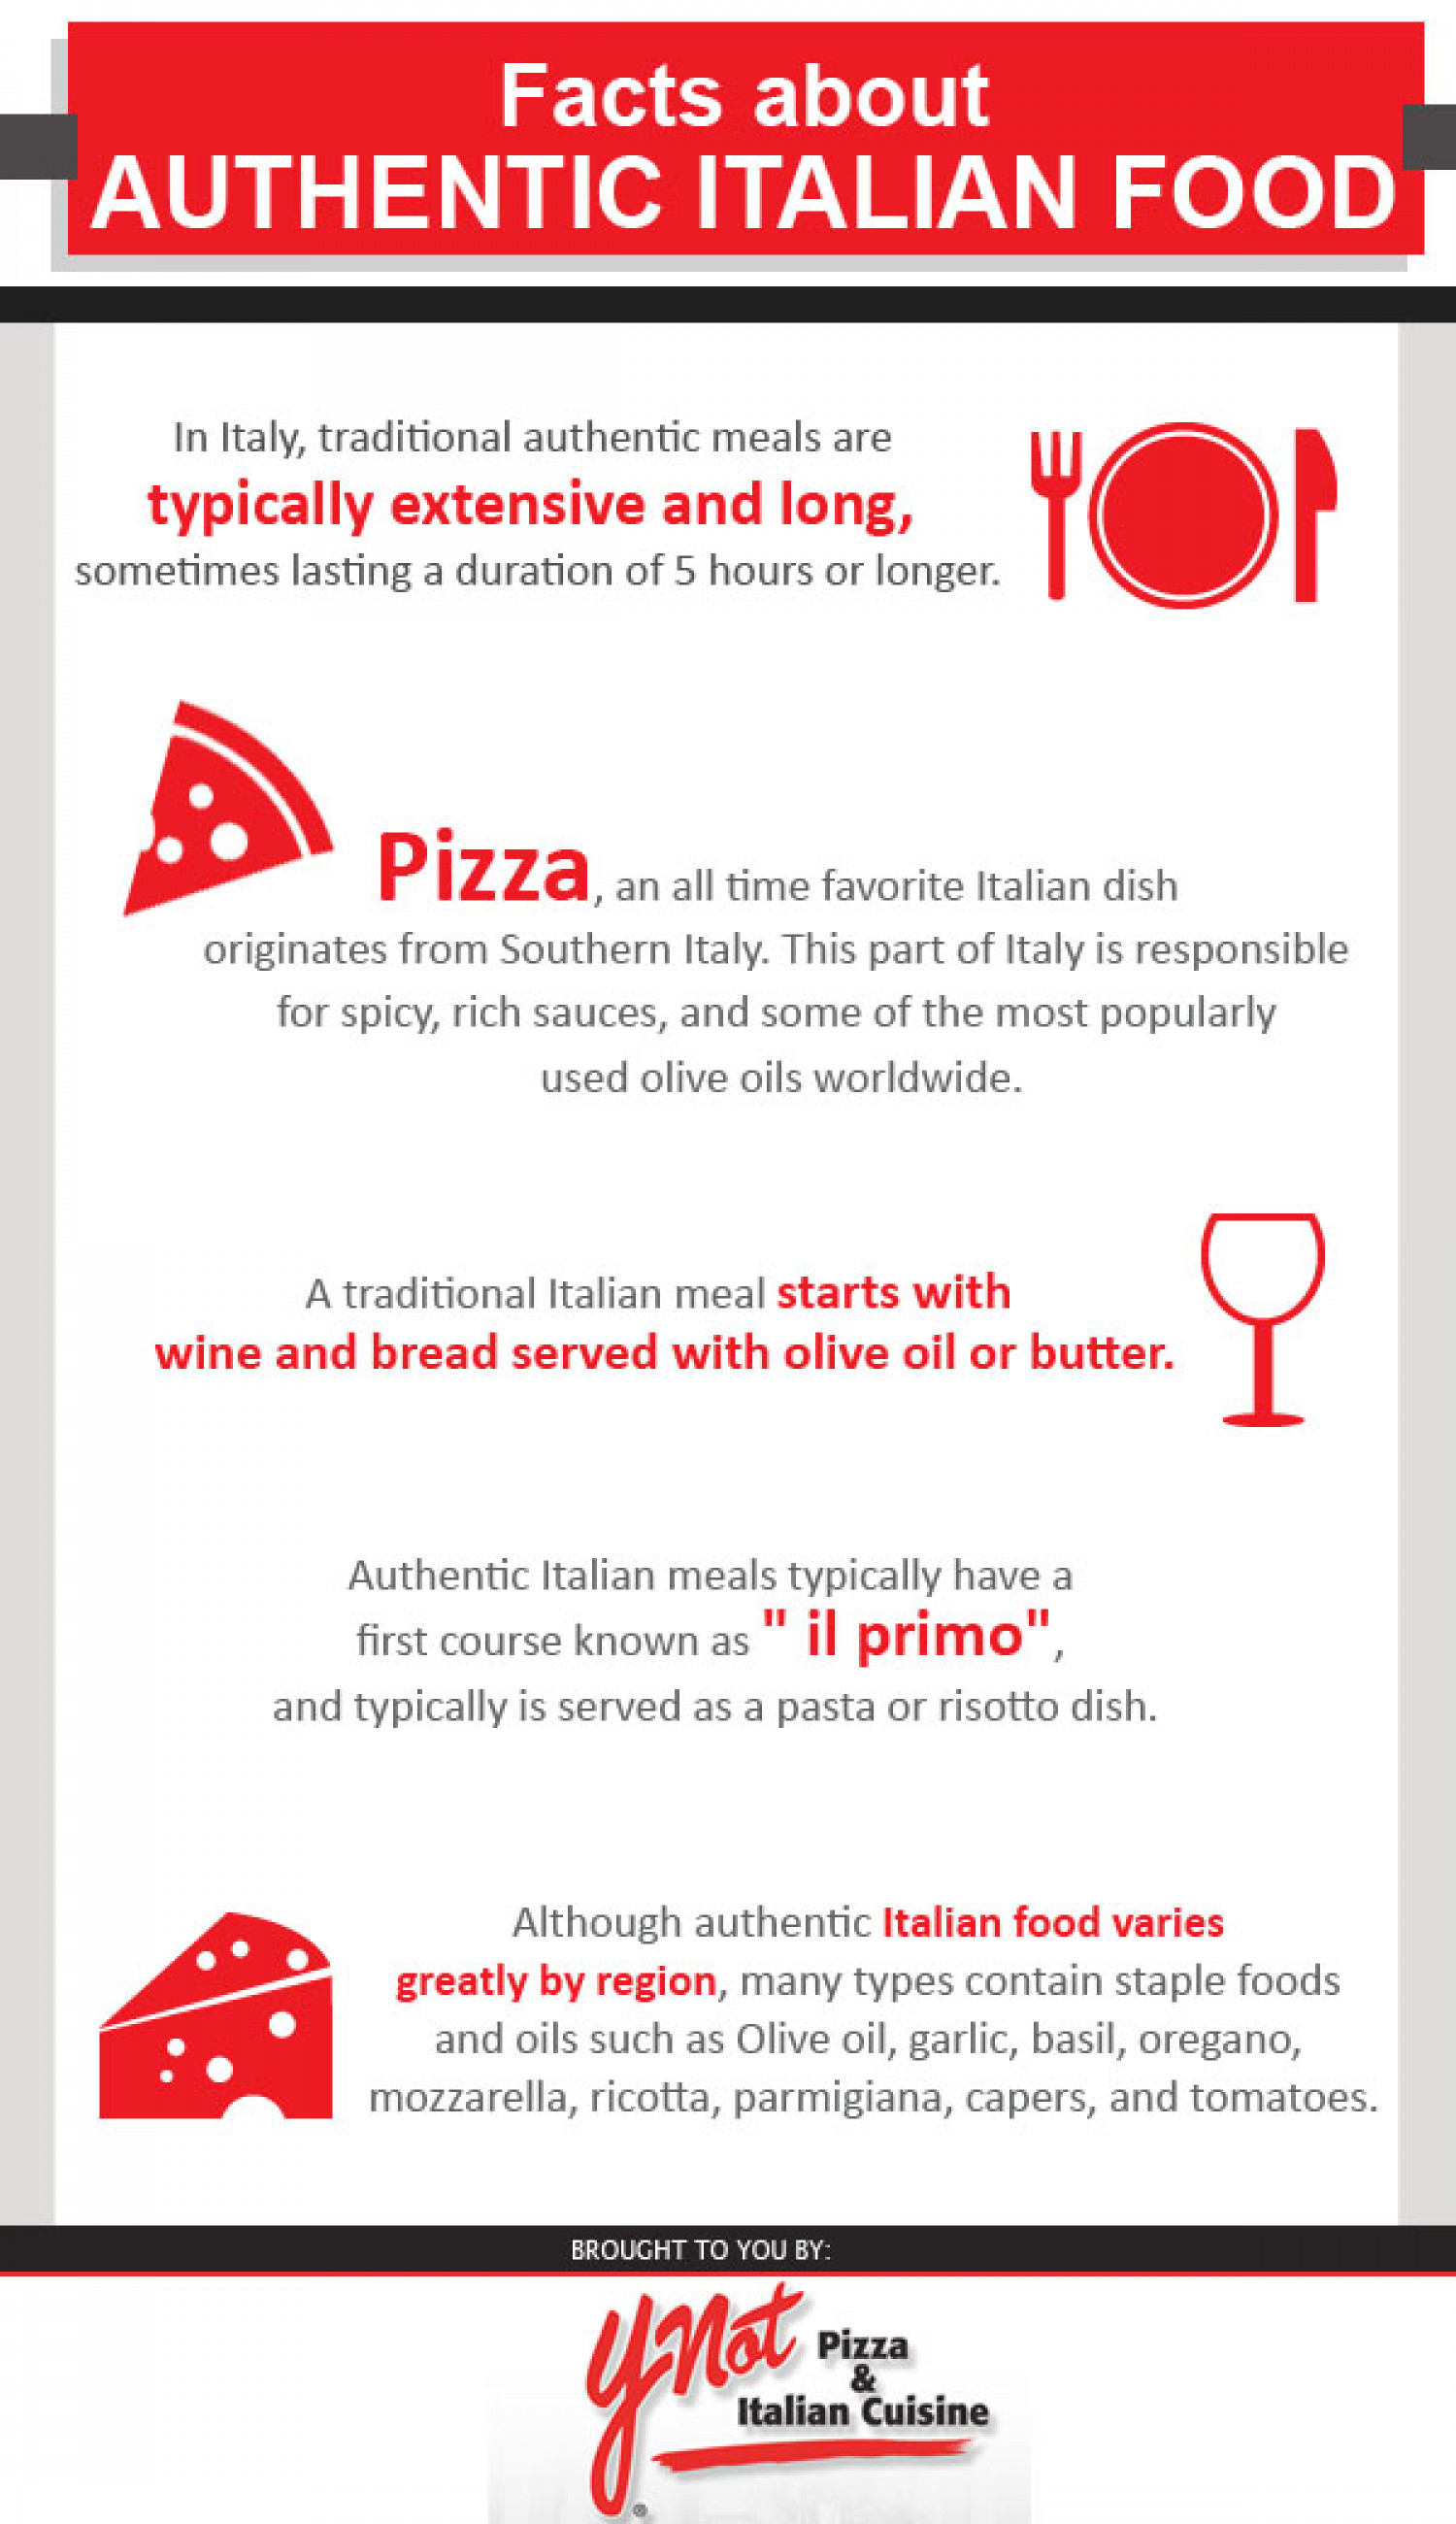 Facts About Authentic Italian Food Infographic